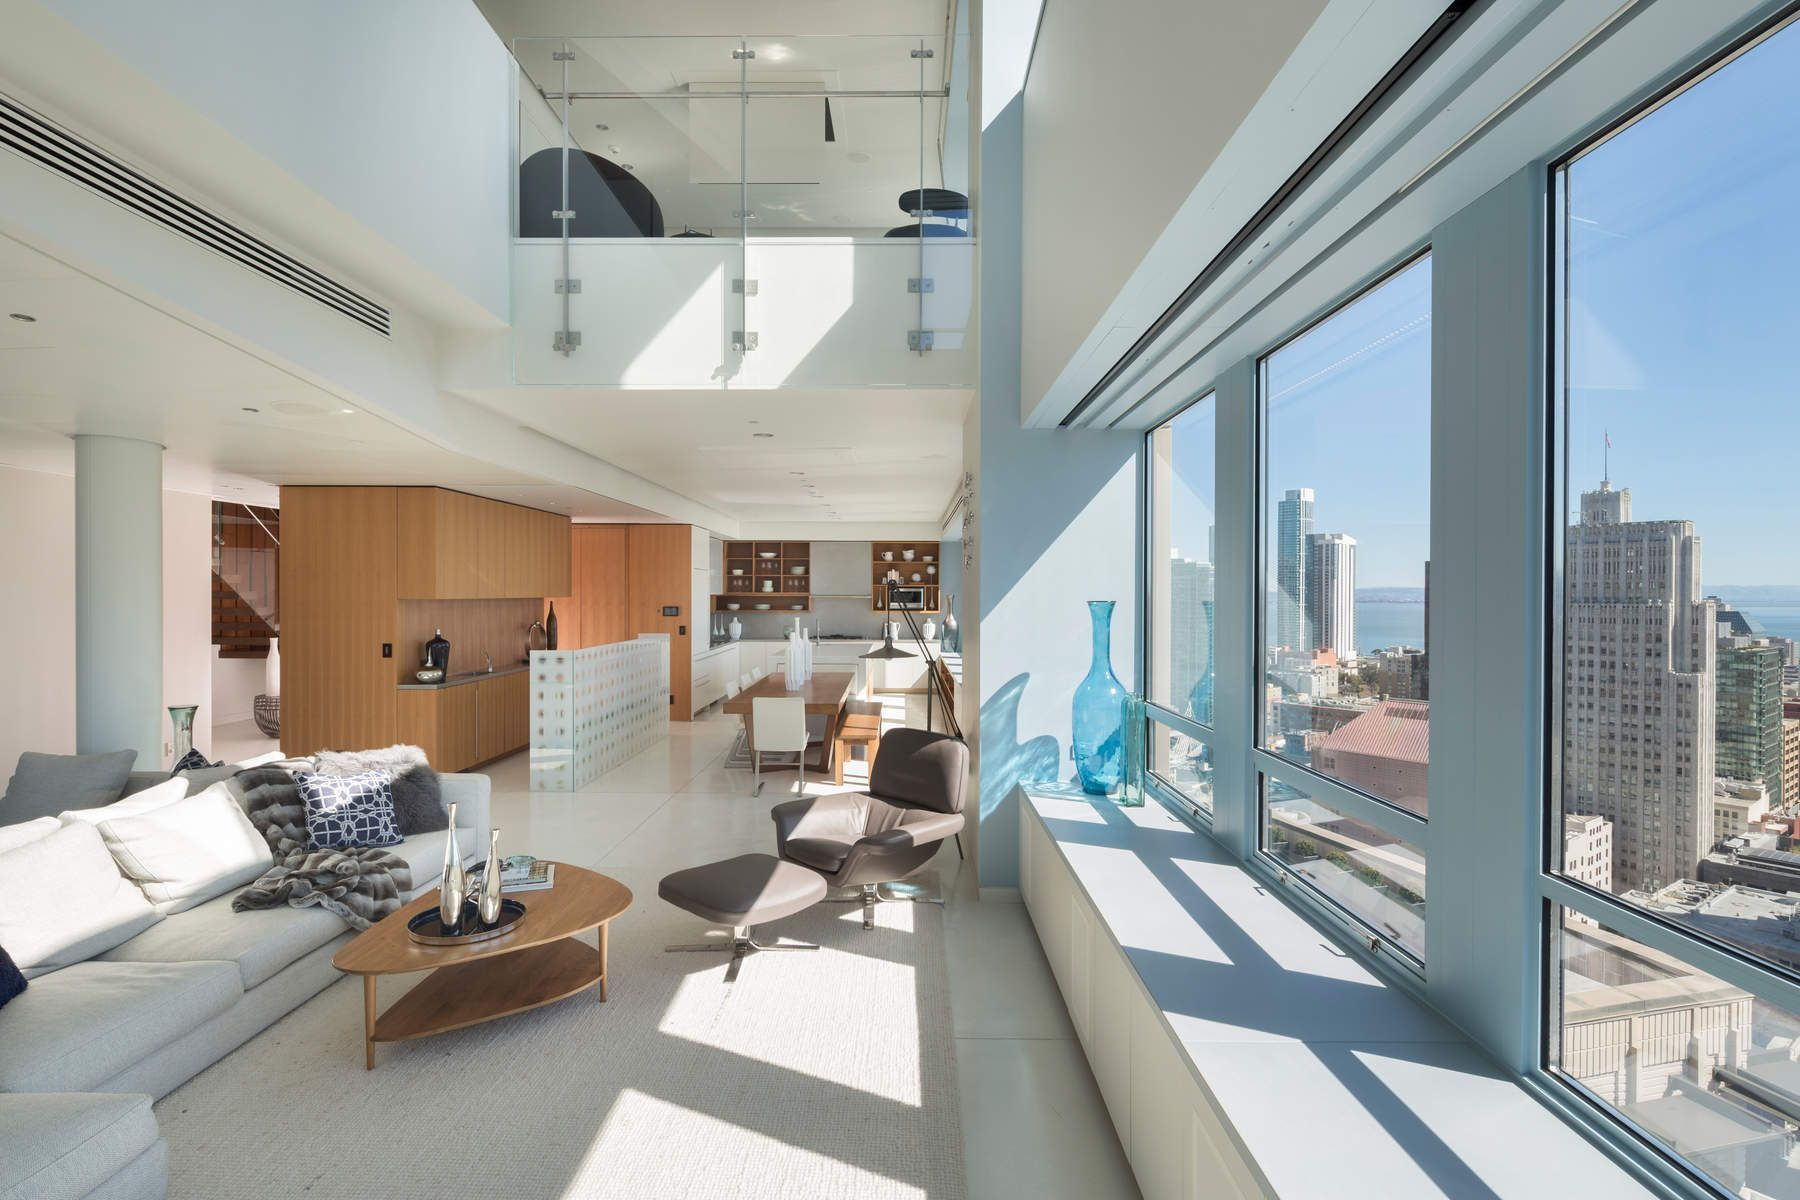 Fesselnd Two Story Penthouse Taking Advantage Of California Sunlight In San  Francisco. [1800x1200]